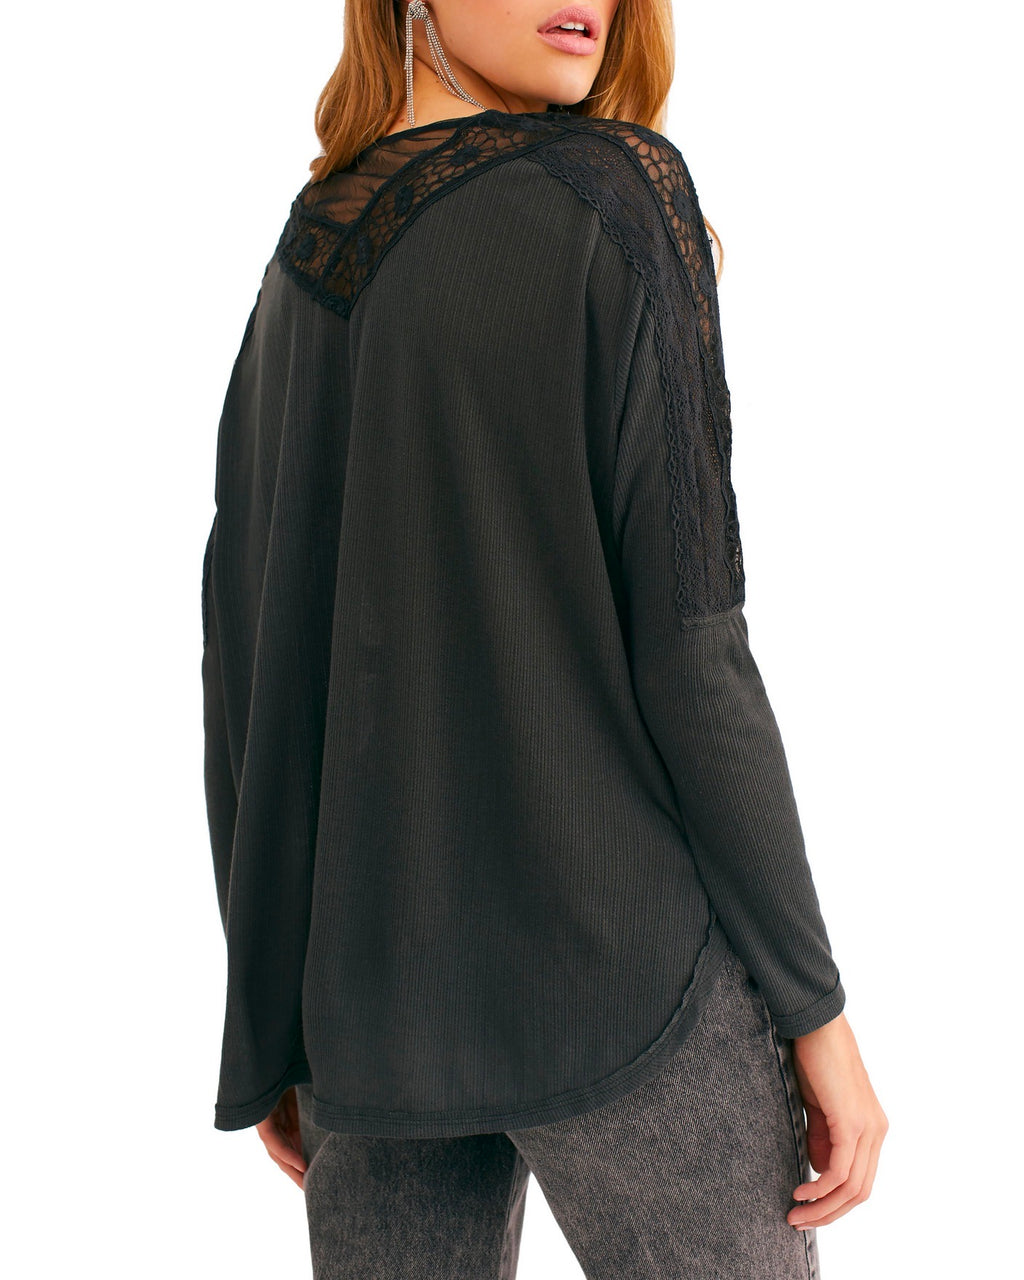 Free People - Lola Long Sleeve Top in Black